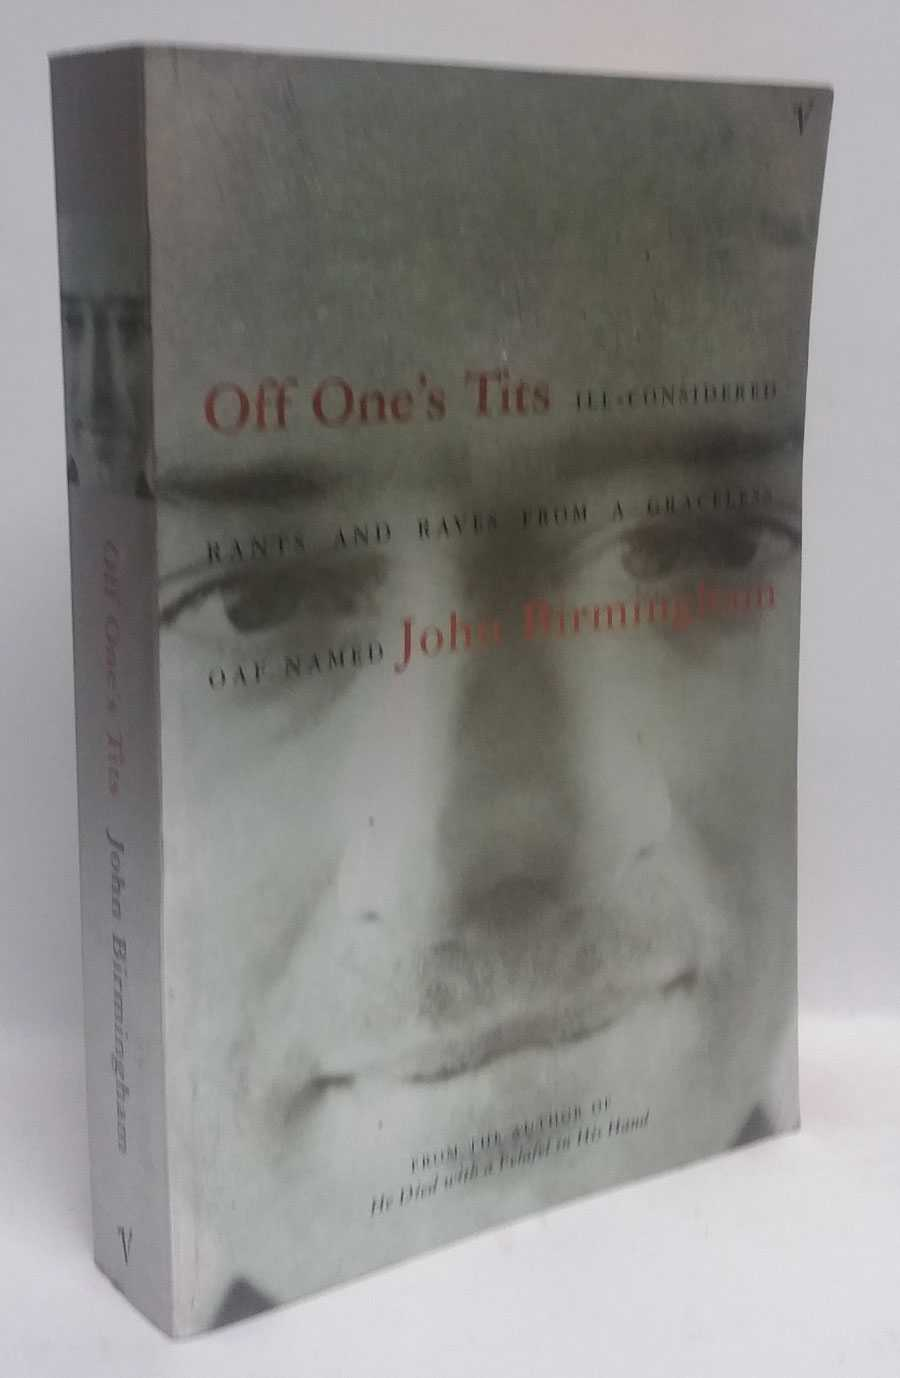 Off One's Tits: Ill-Considered Rants and Raves from a Graceless Oaf Named, John Birmingham